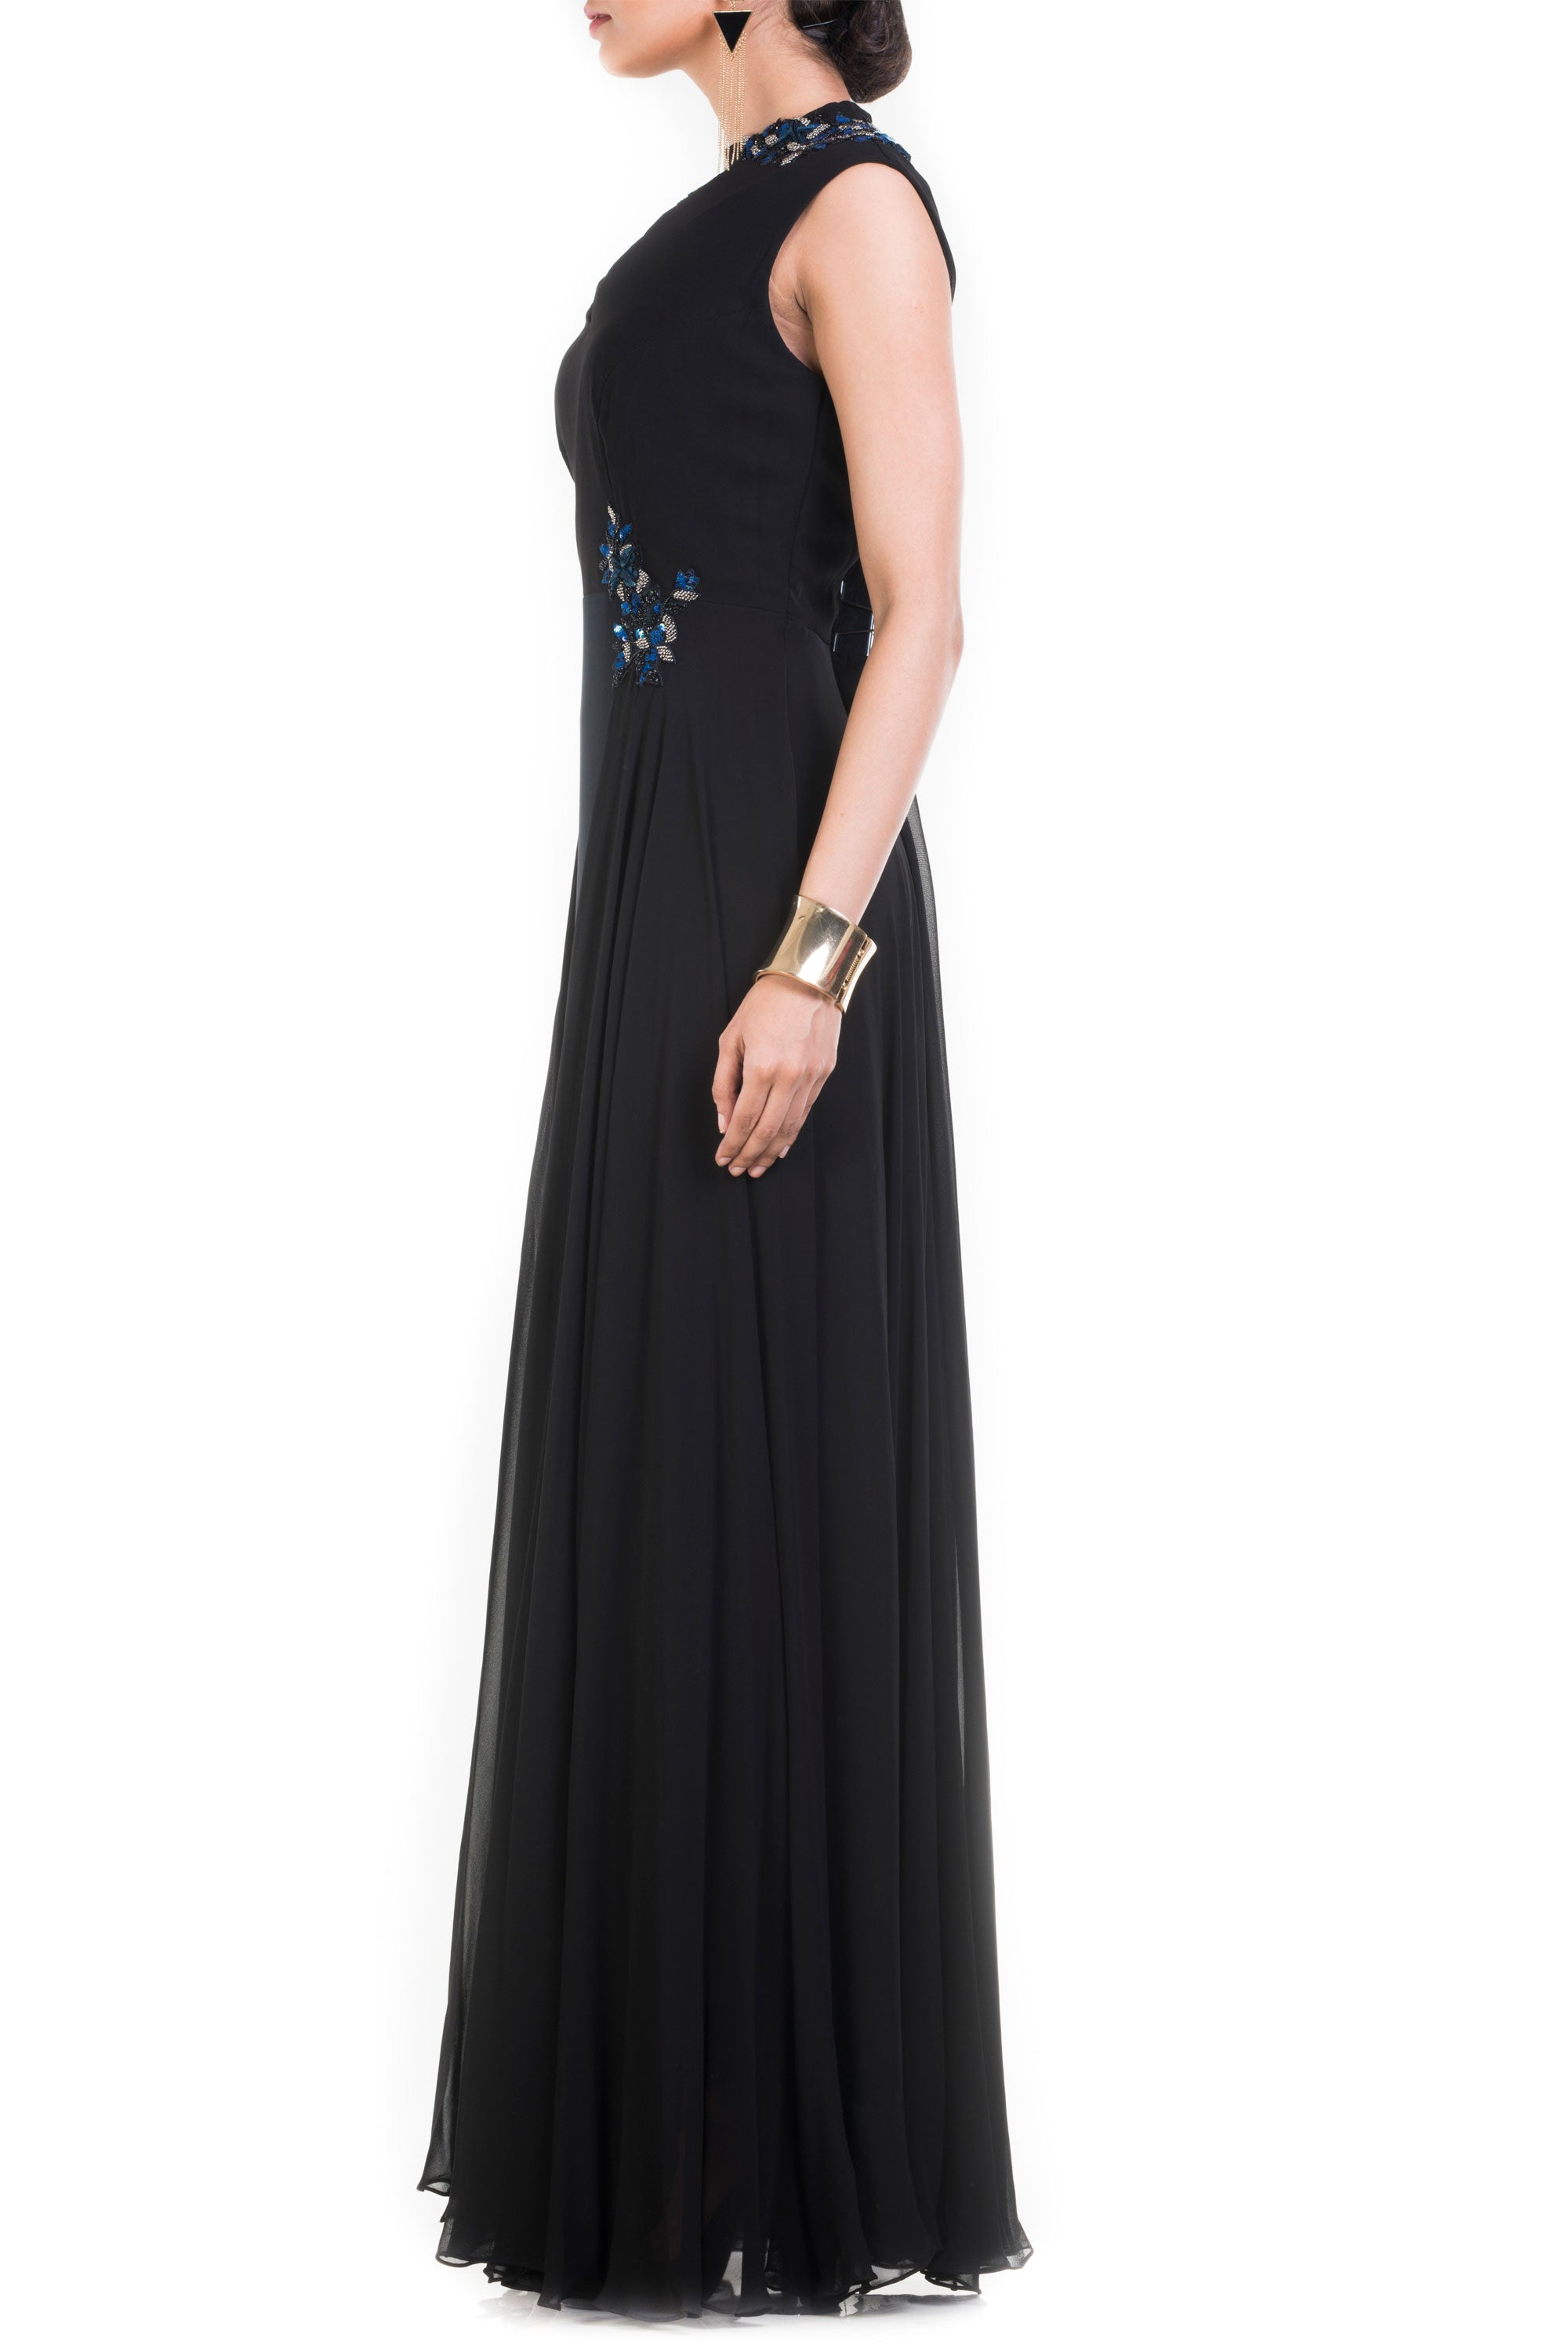 Jet Black Long V Neck Sleeveless Gown Side